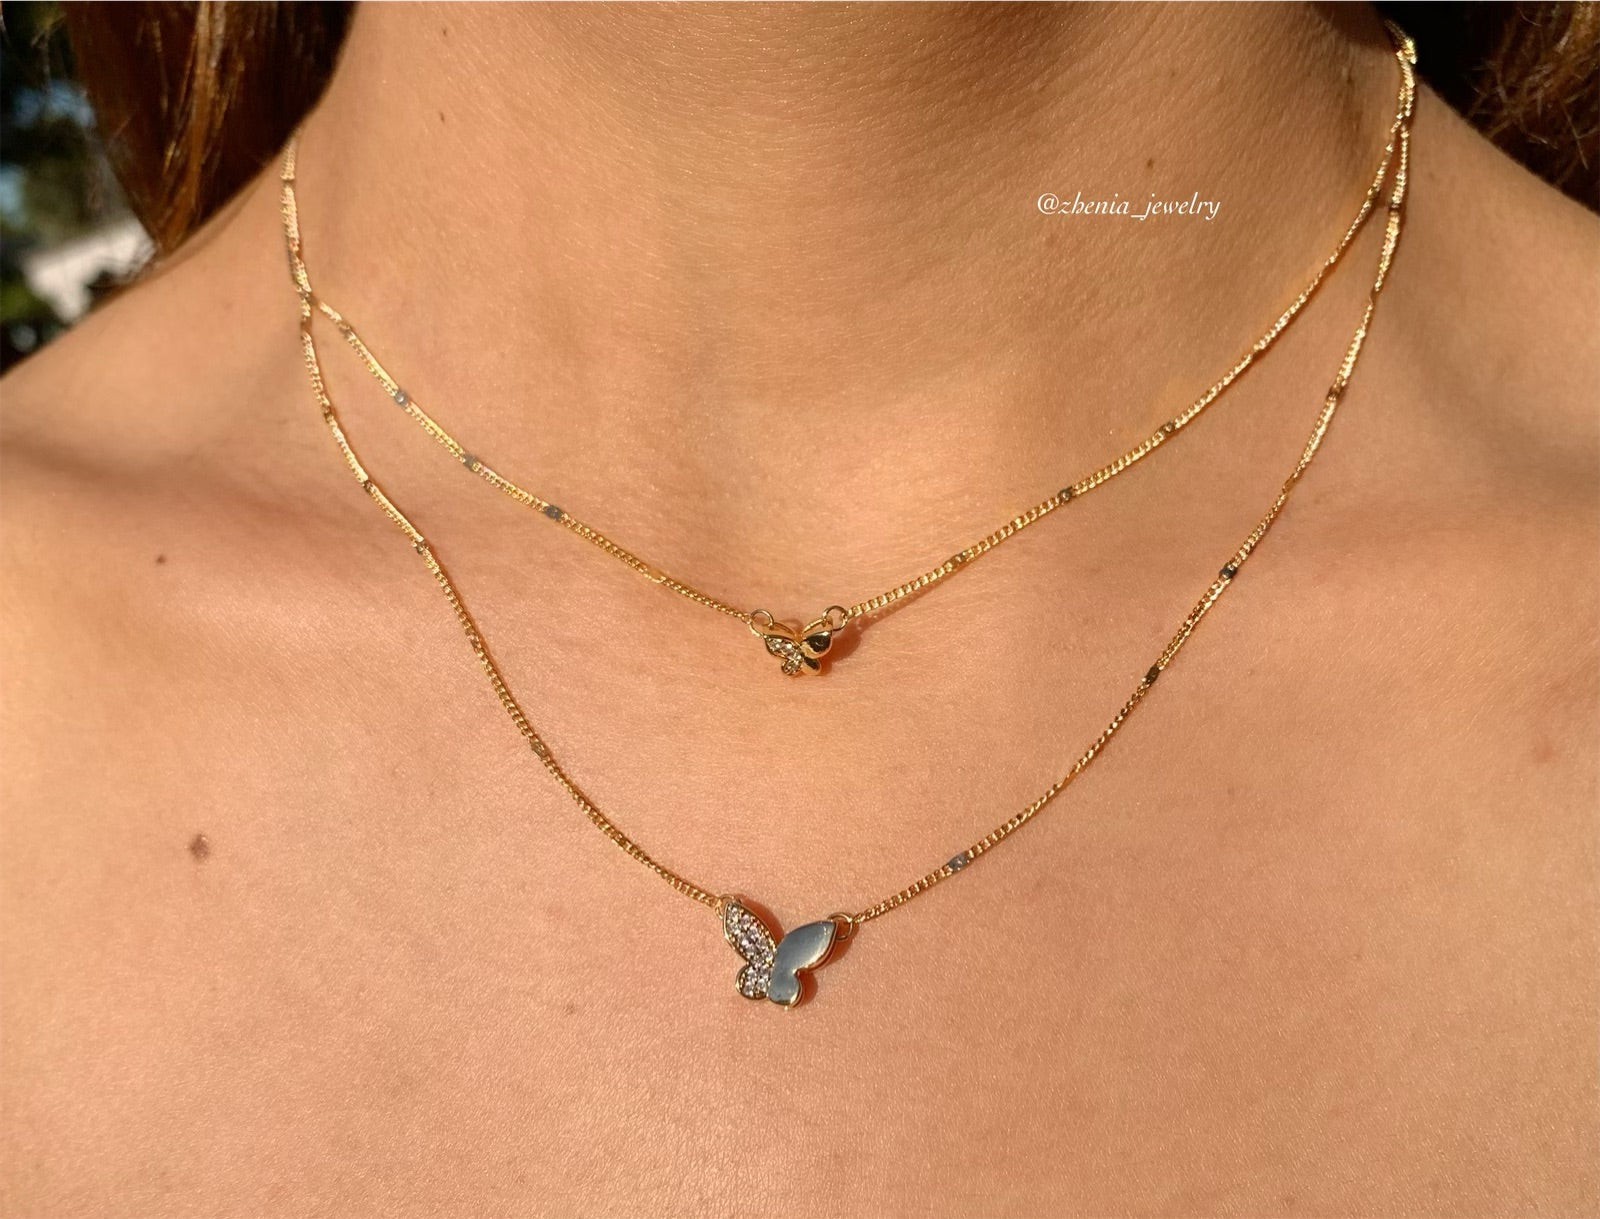 butterfly's necklace